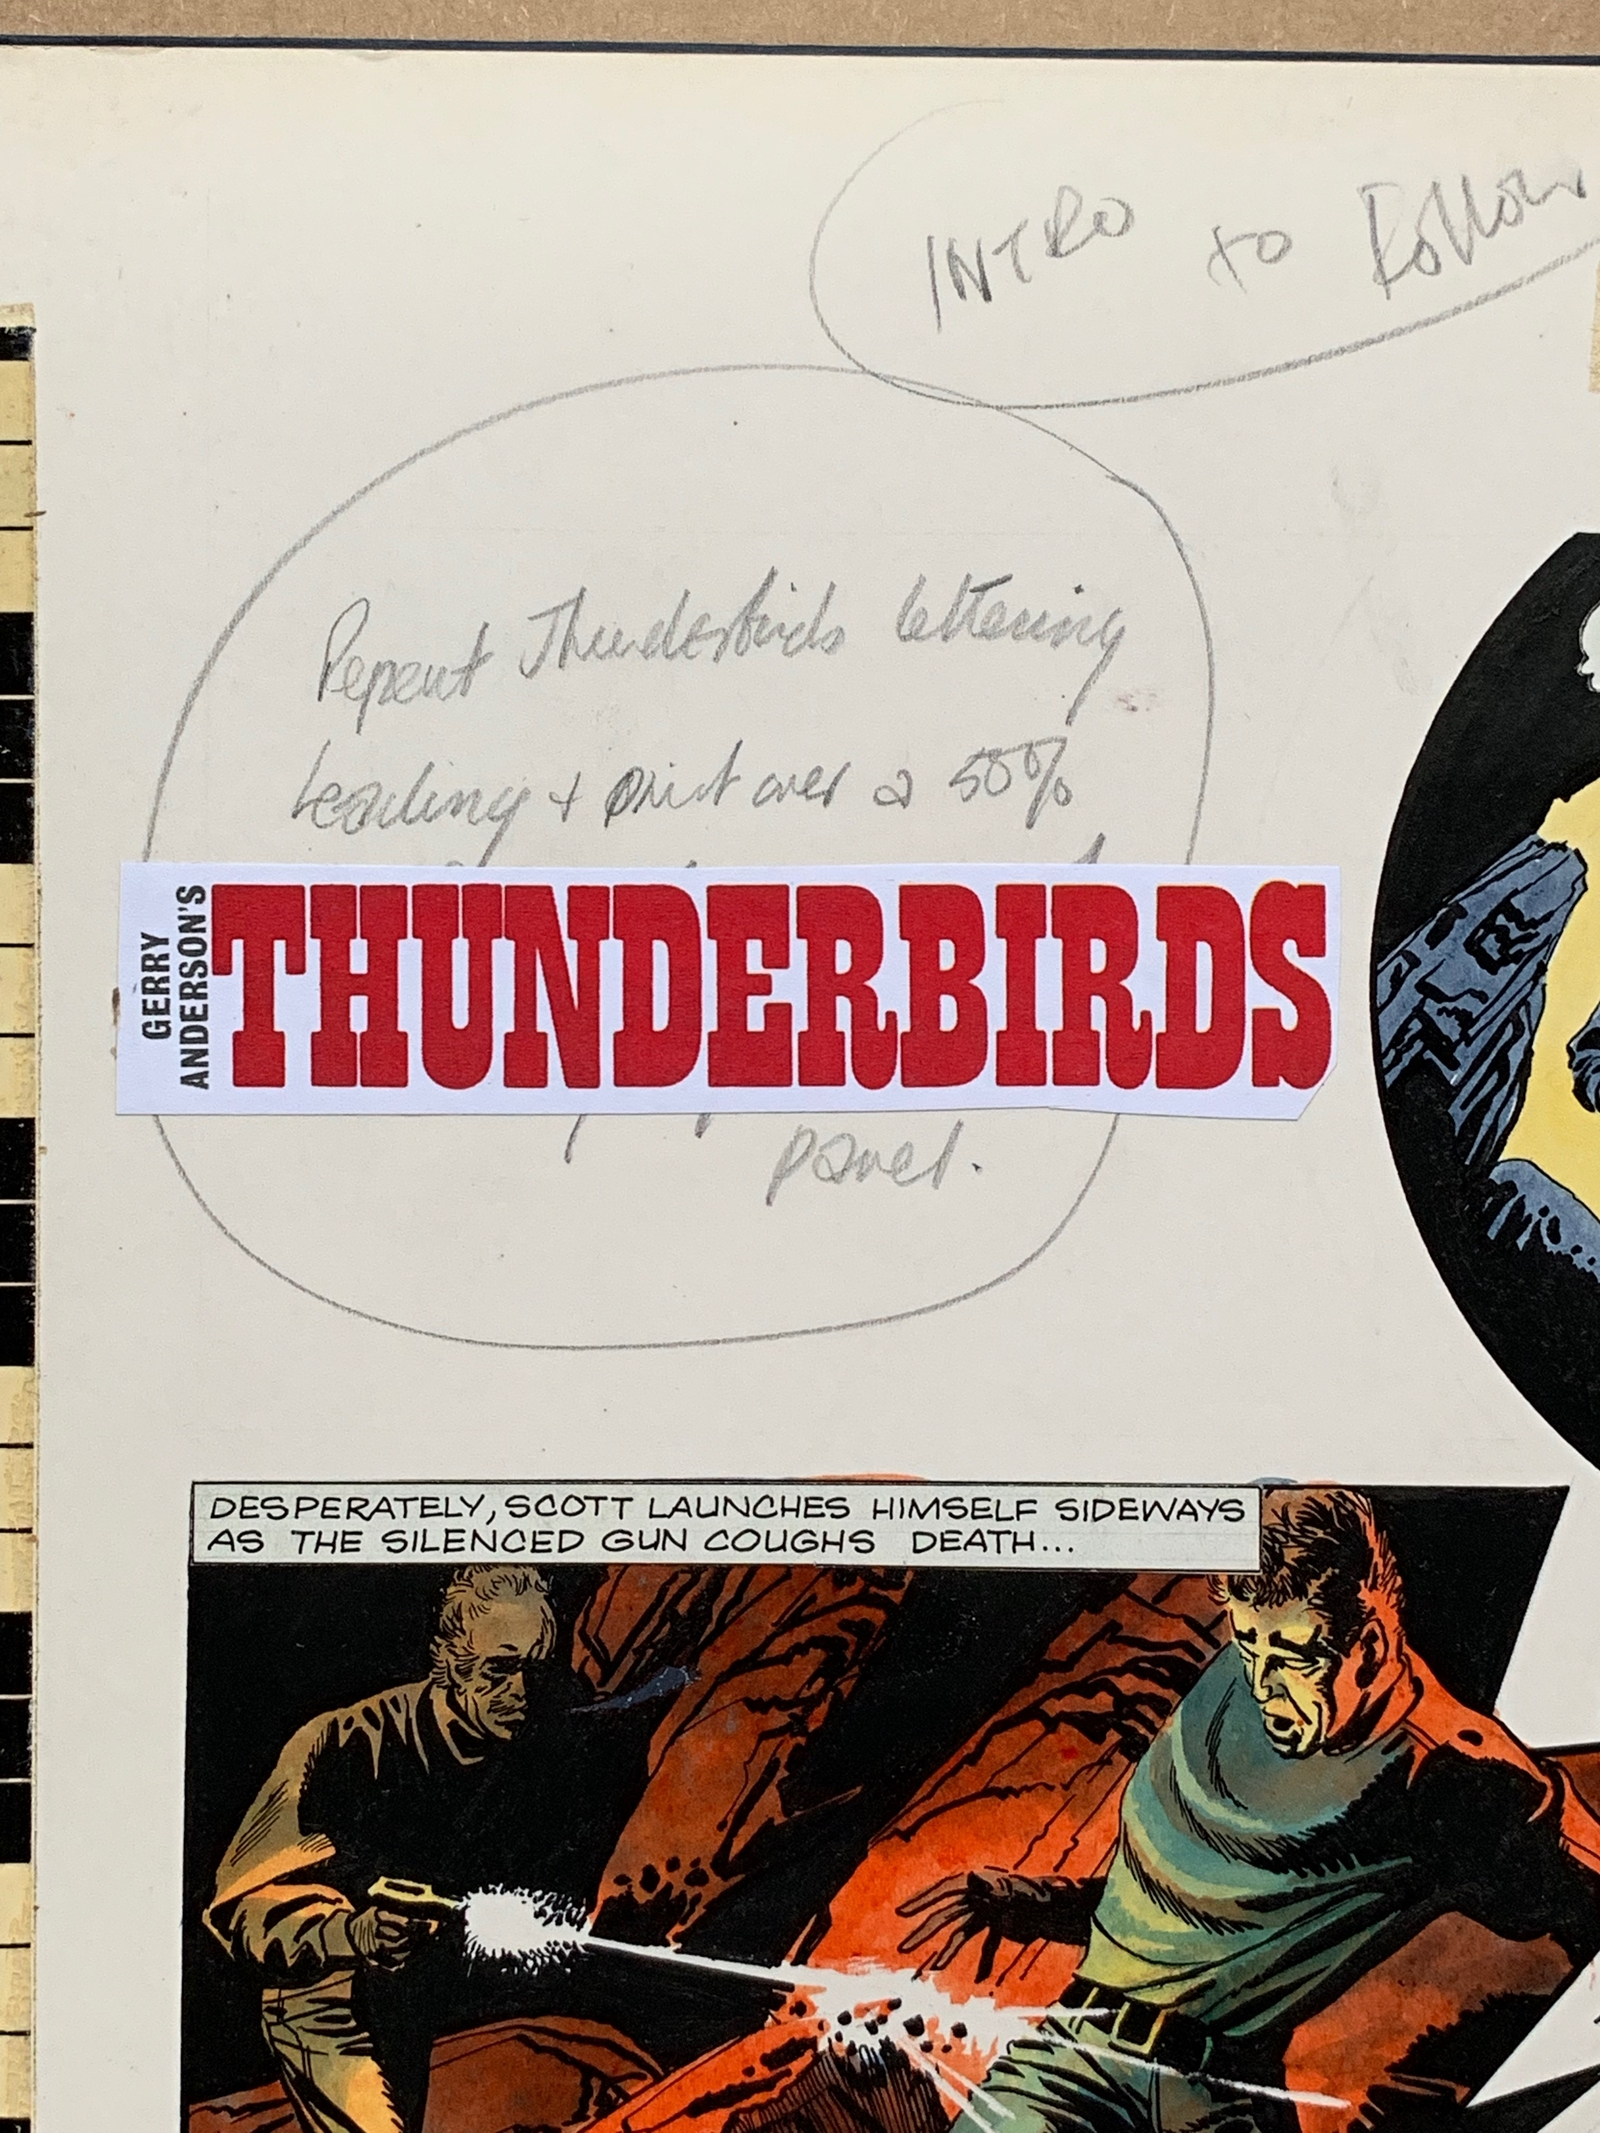 Lot 1192 - THUNDERBIRDS (1969) - ORIGINAL ARTWORK from TV21 C